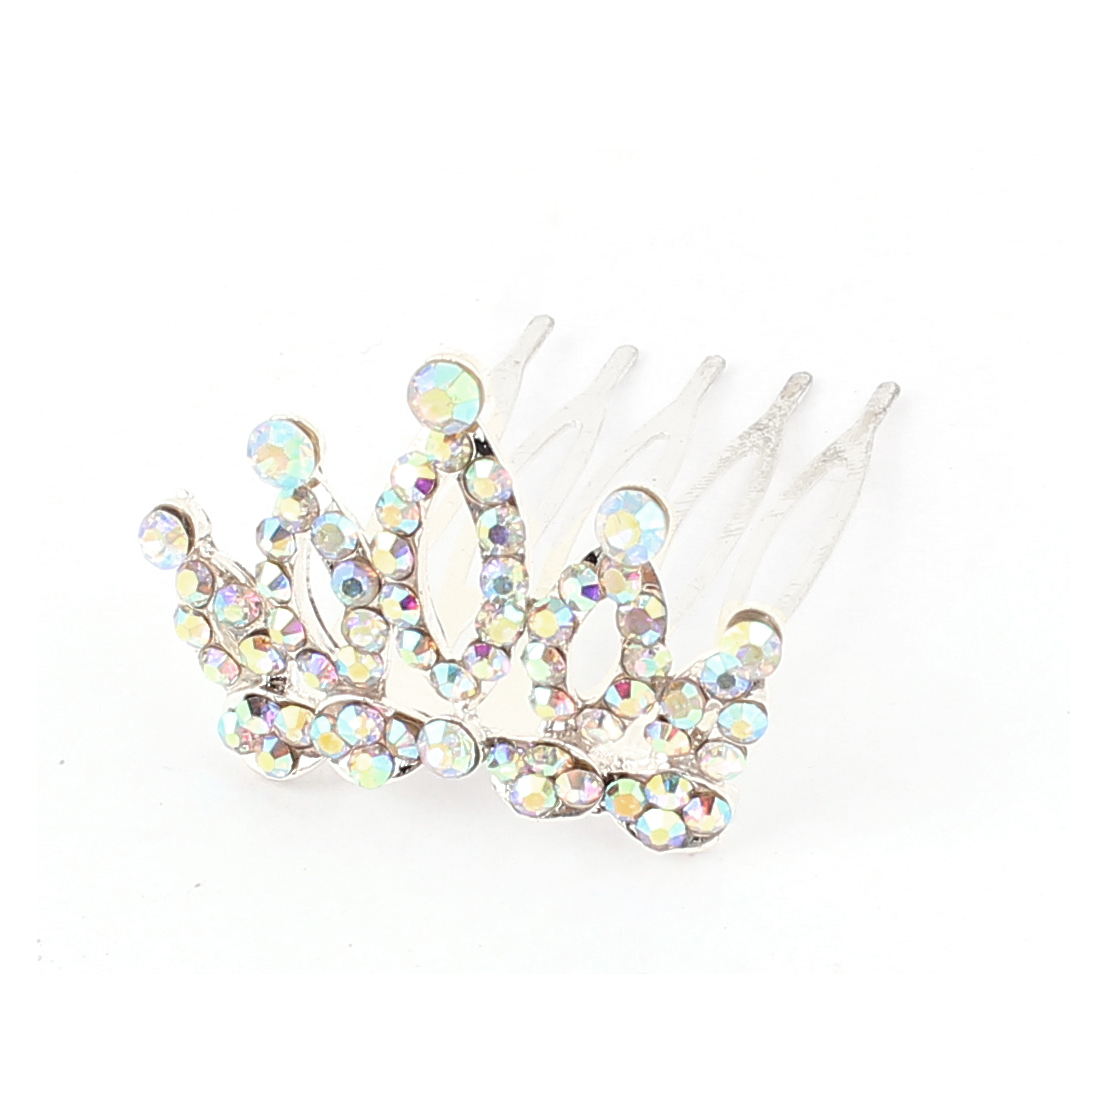 Bridal Wedding Glittery Faux Rhinestone Accent Hairpin Hair Crown Comb Clip